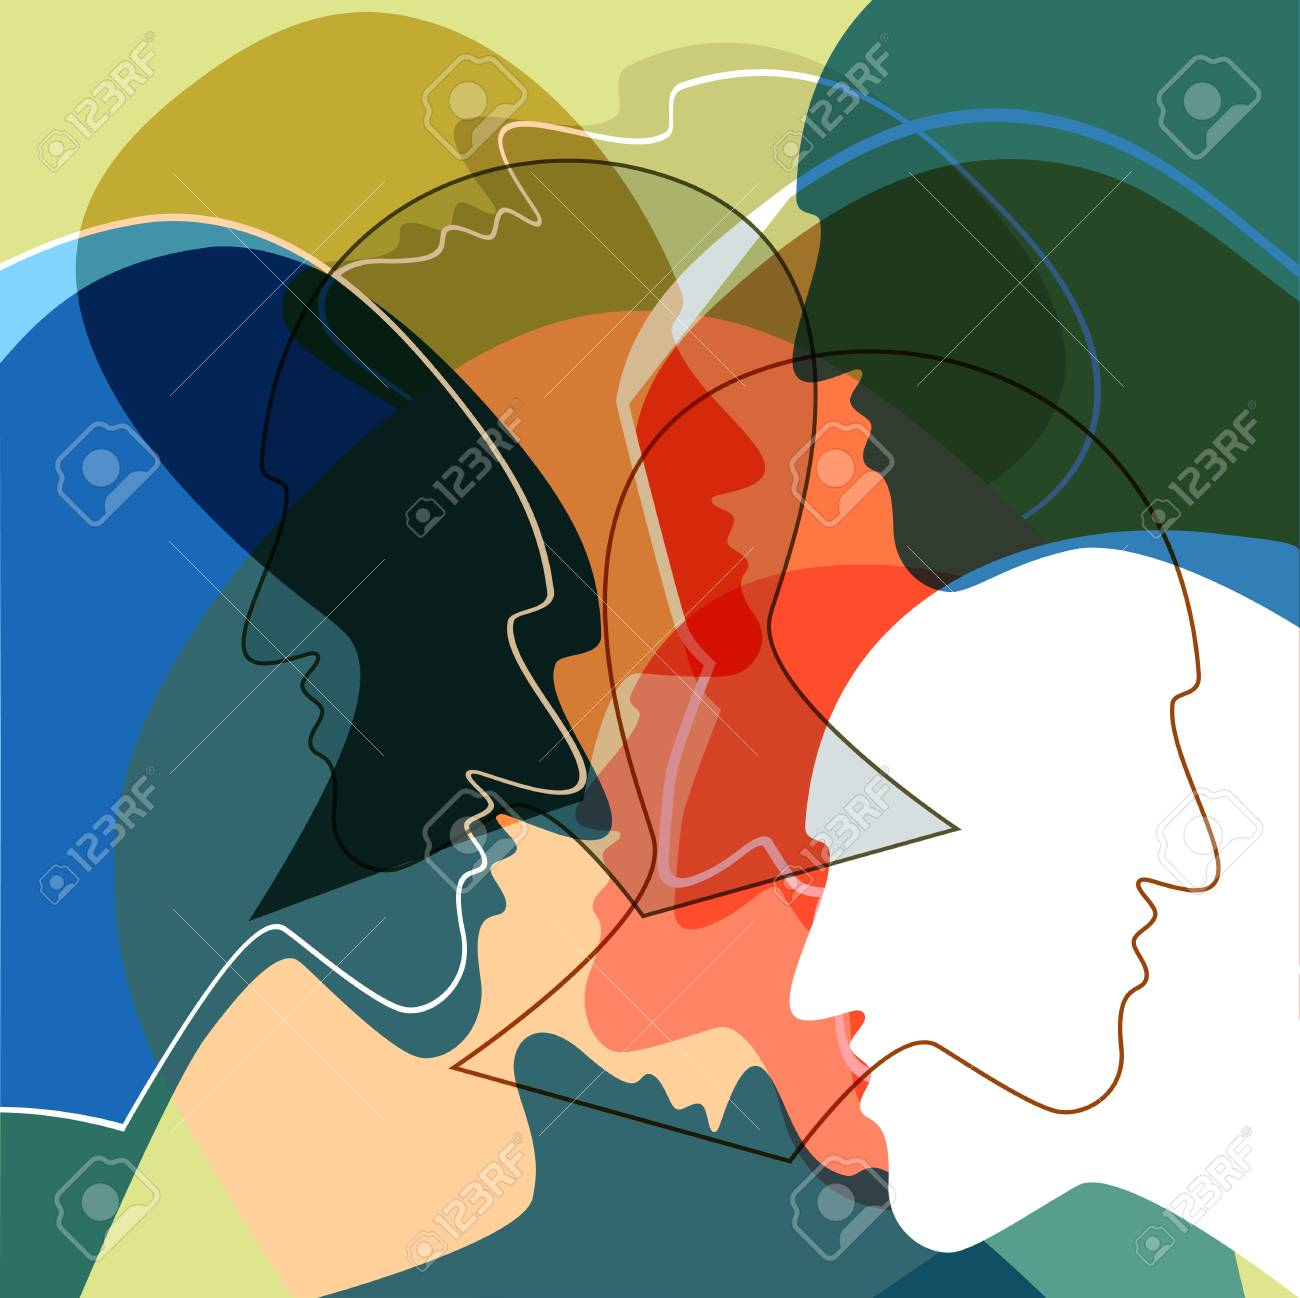 Heads people concept, symbol of communication between people. Vector ilustration. - 88536297